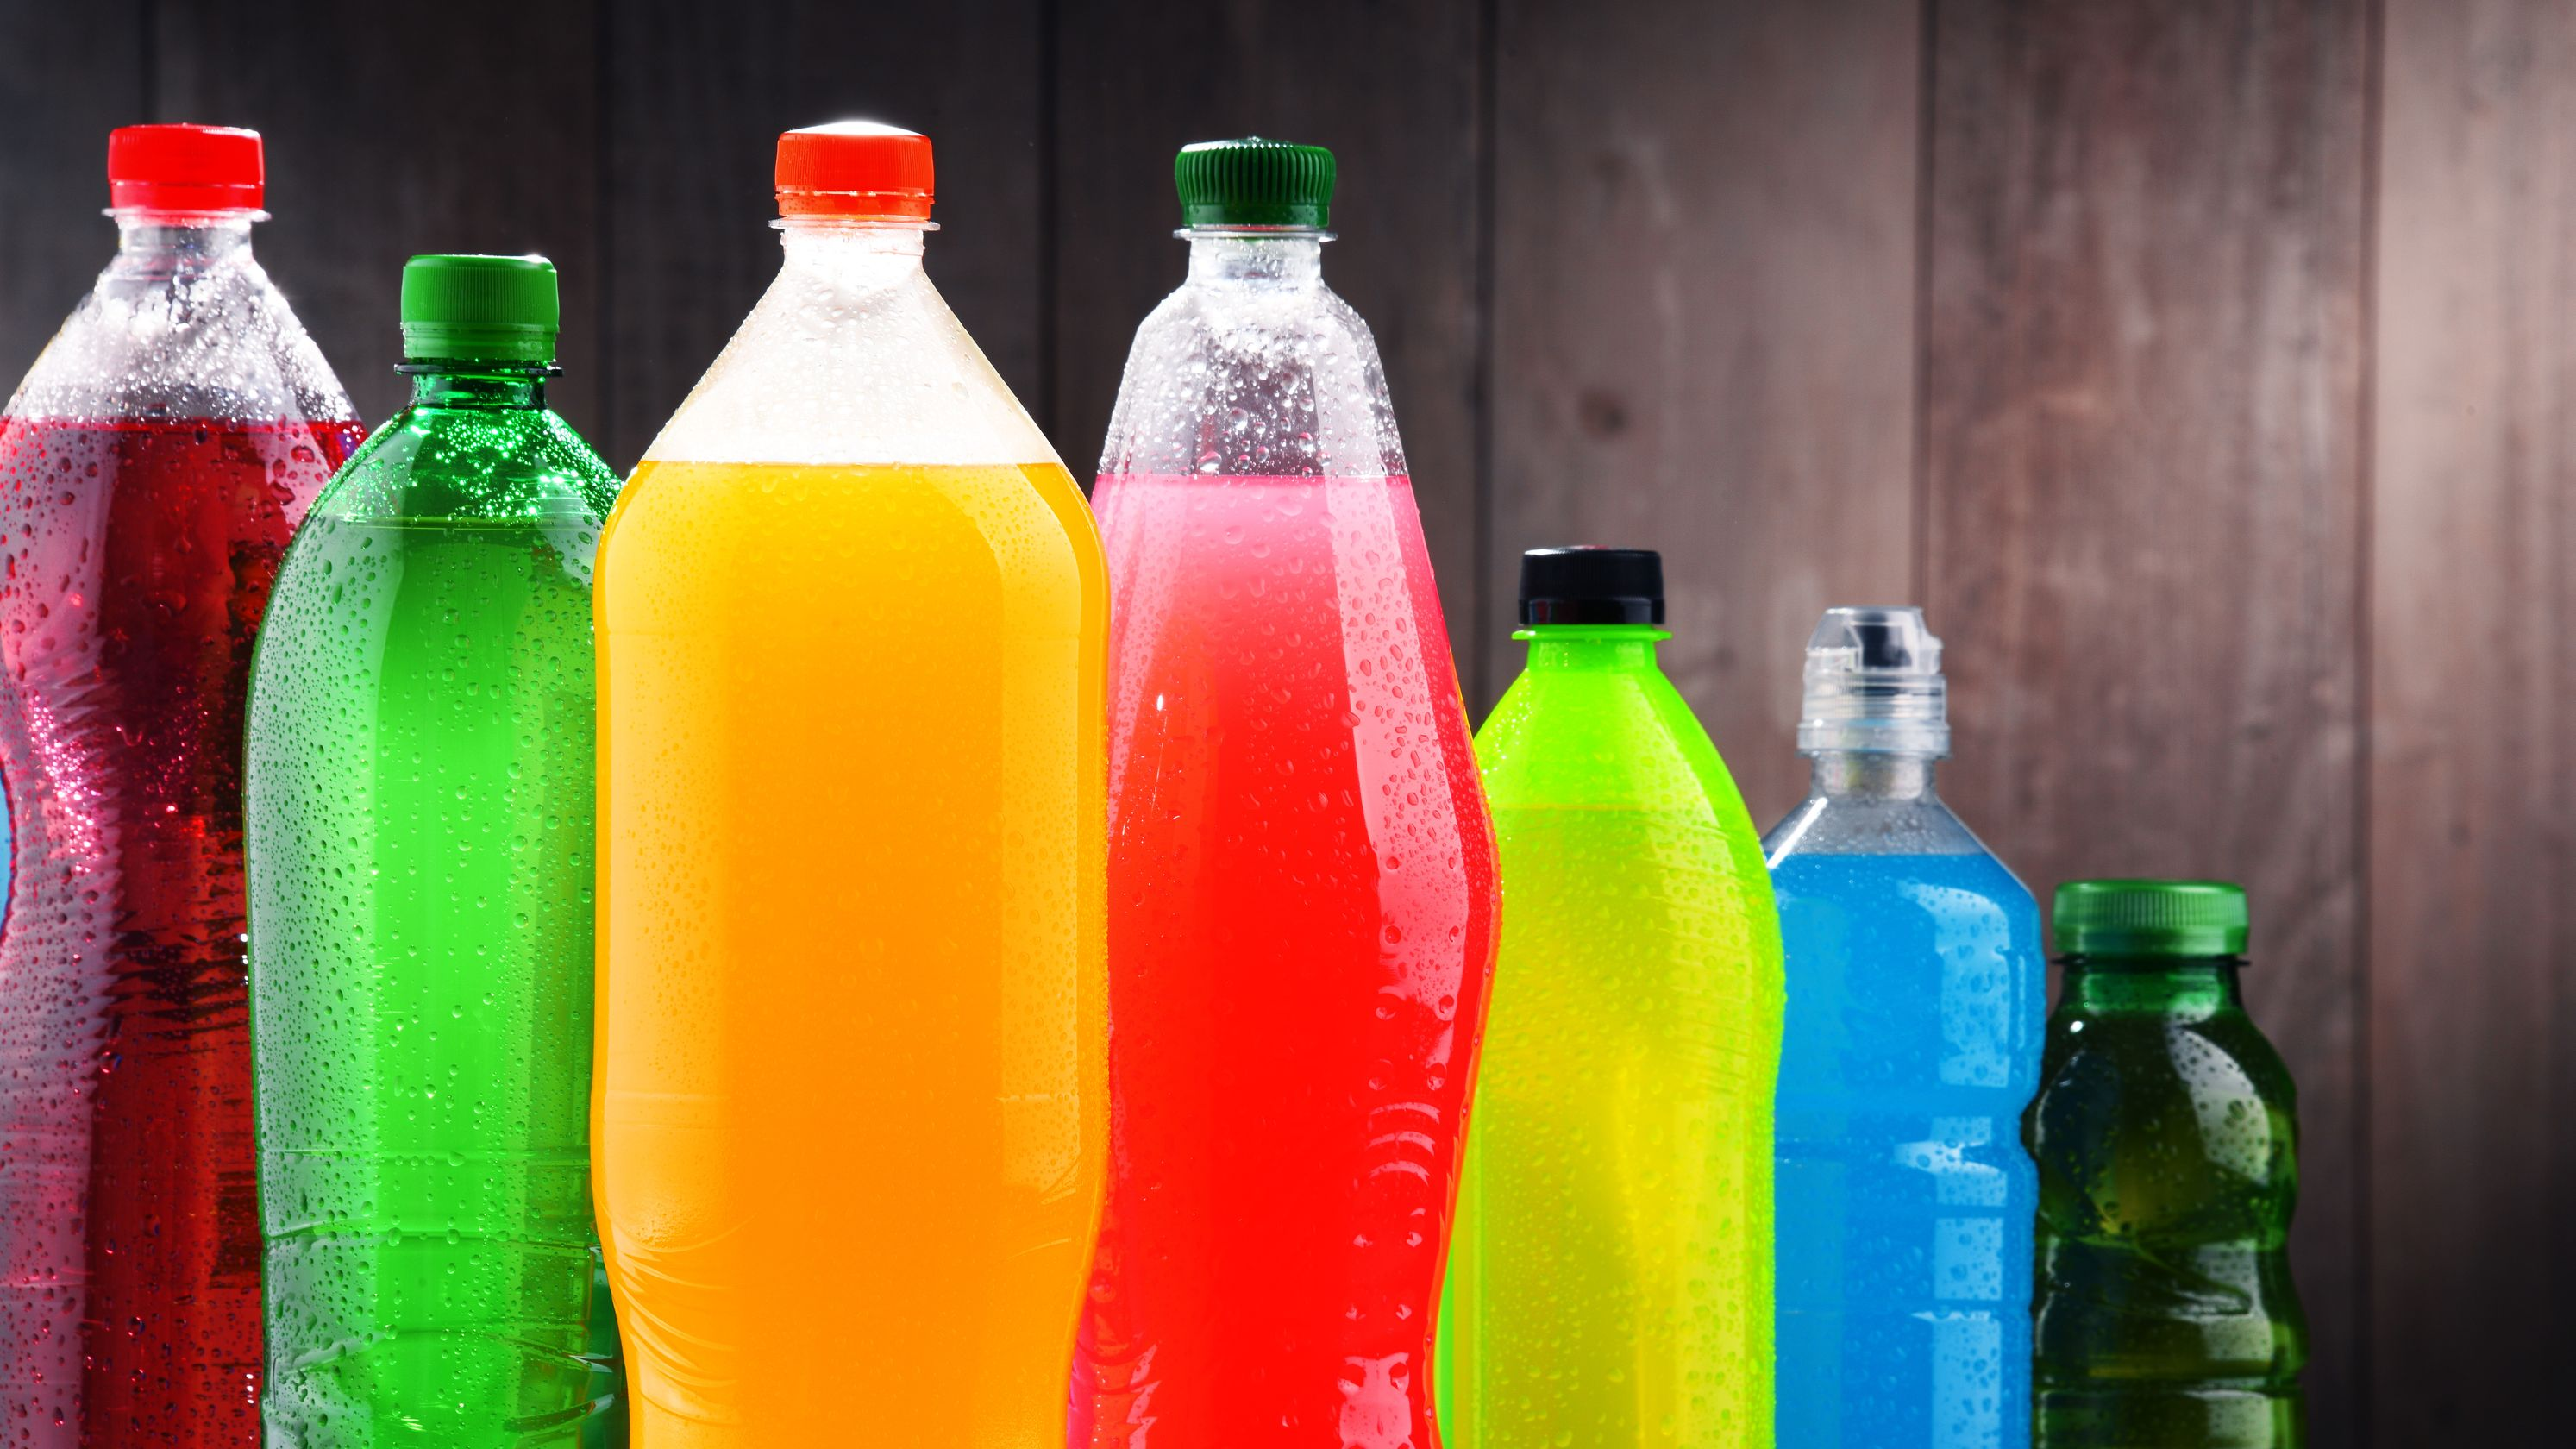 Drinking More Sugar-Sweetened Beverages Could Result in Premature Death